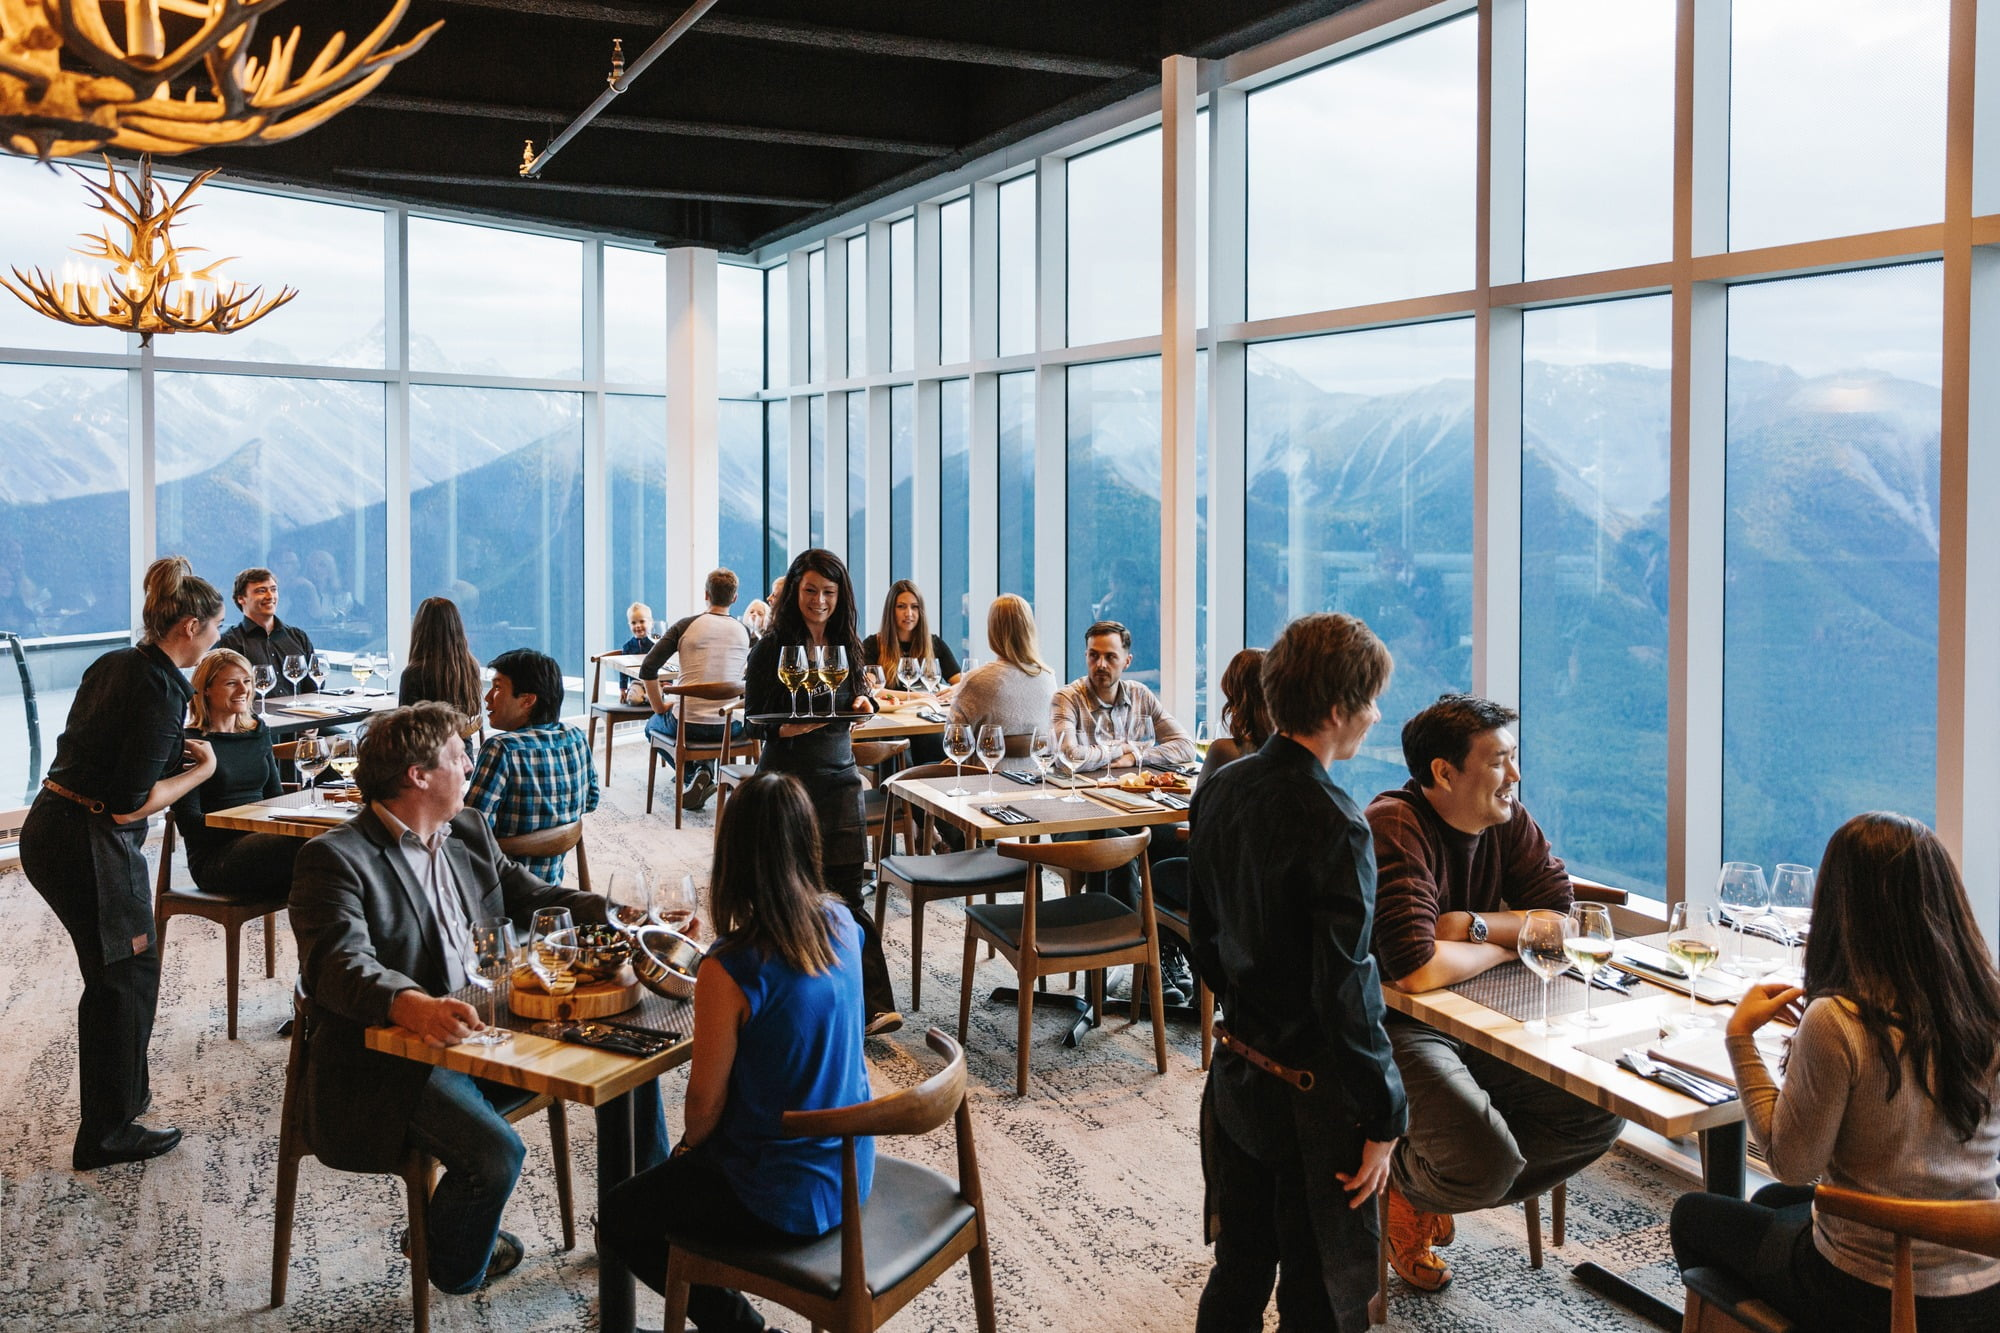 People Eating In Sky Bistro With Mountains Behind Them